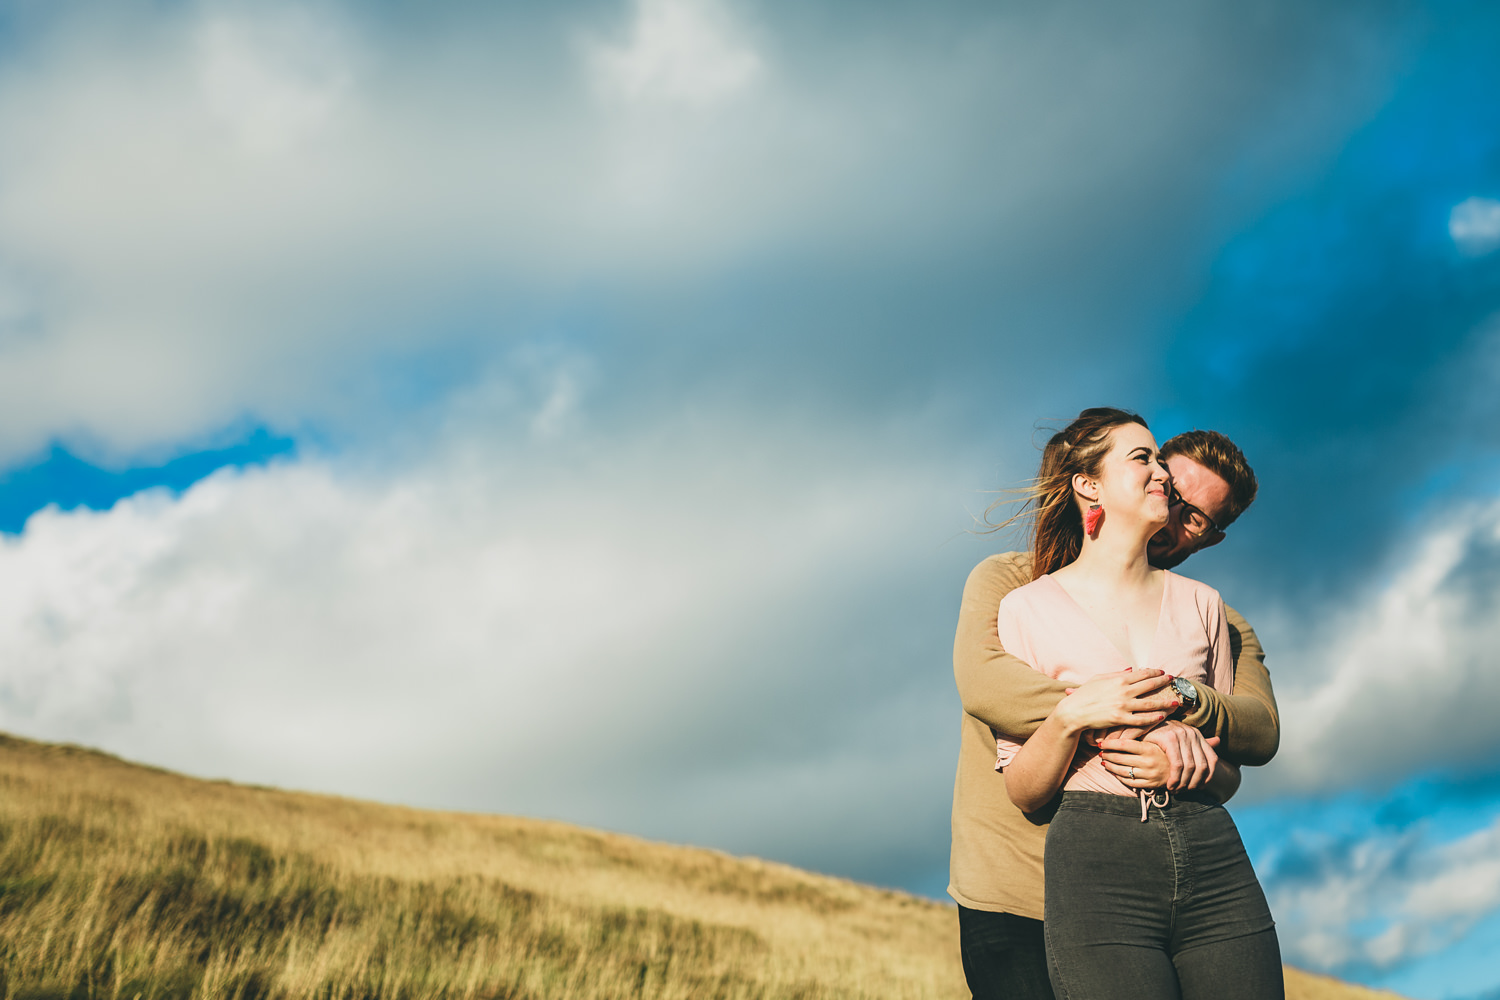 V&D | Malvern Hills Engagament Shoot-86.JPG